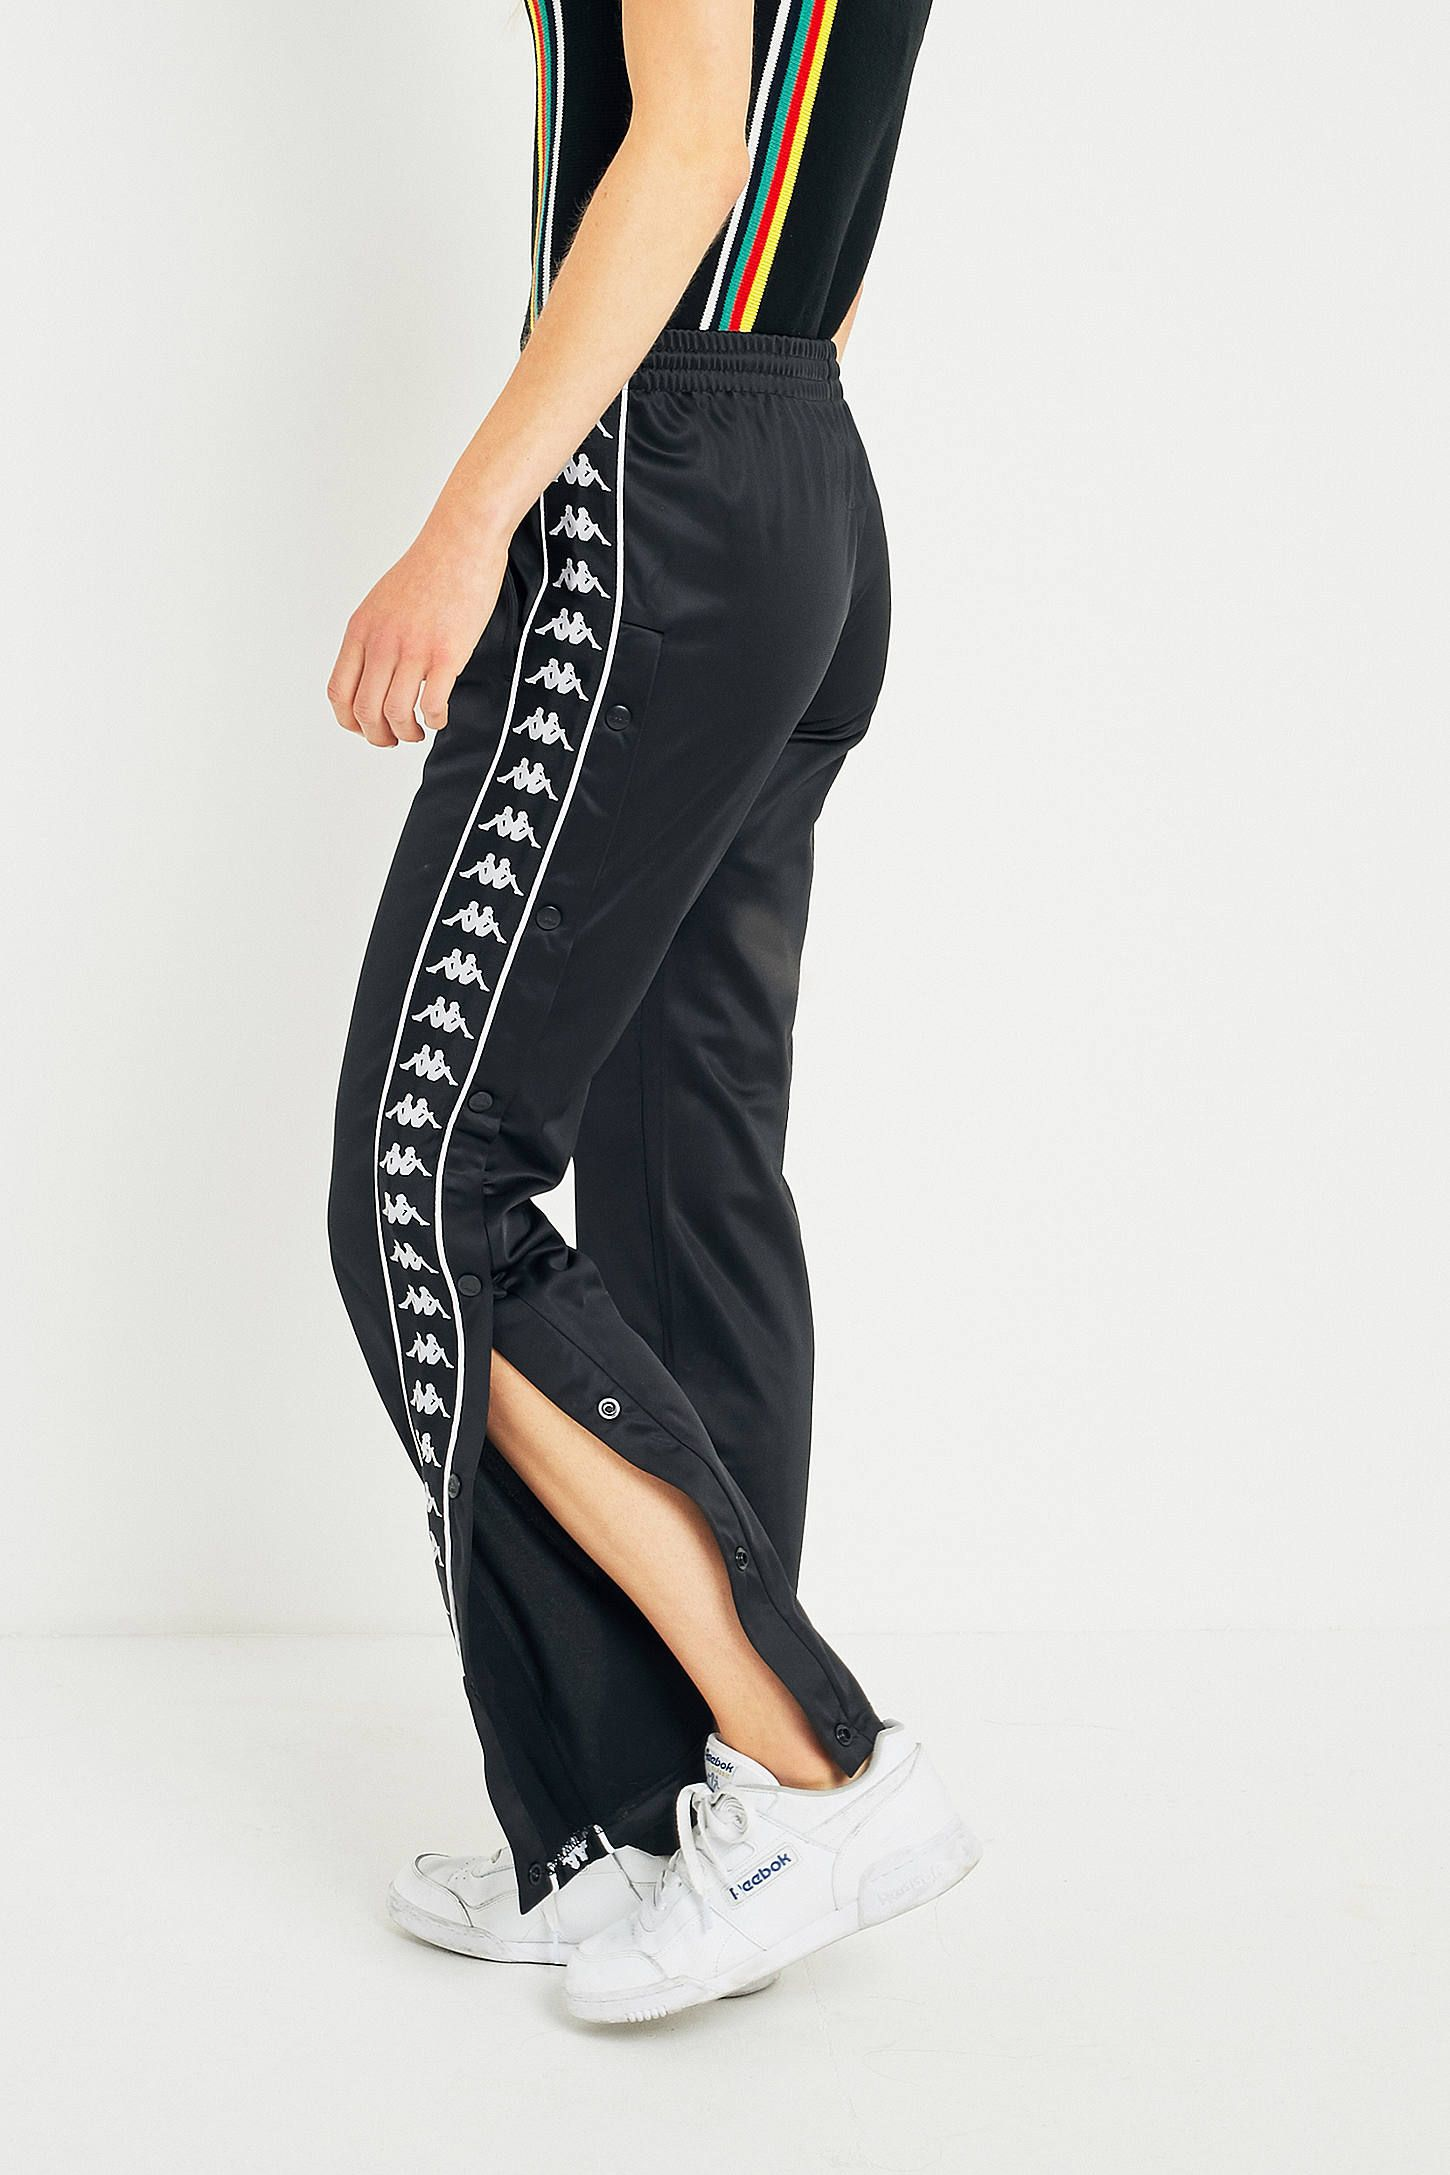 4fccc7d5482b Kappa Black Taping Popper Track Pants | outfits | Pants outfit ...